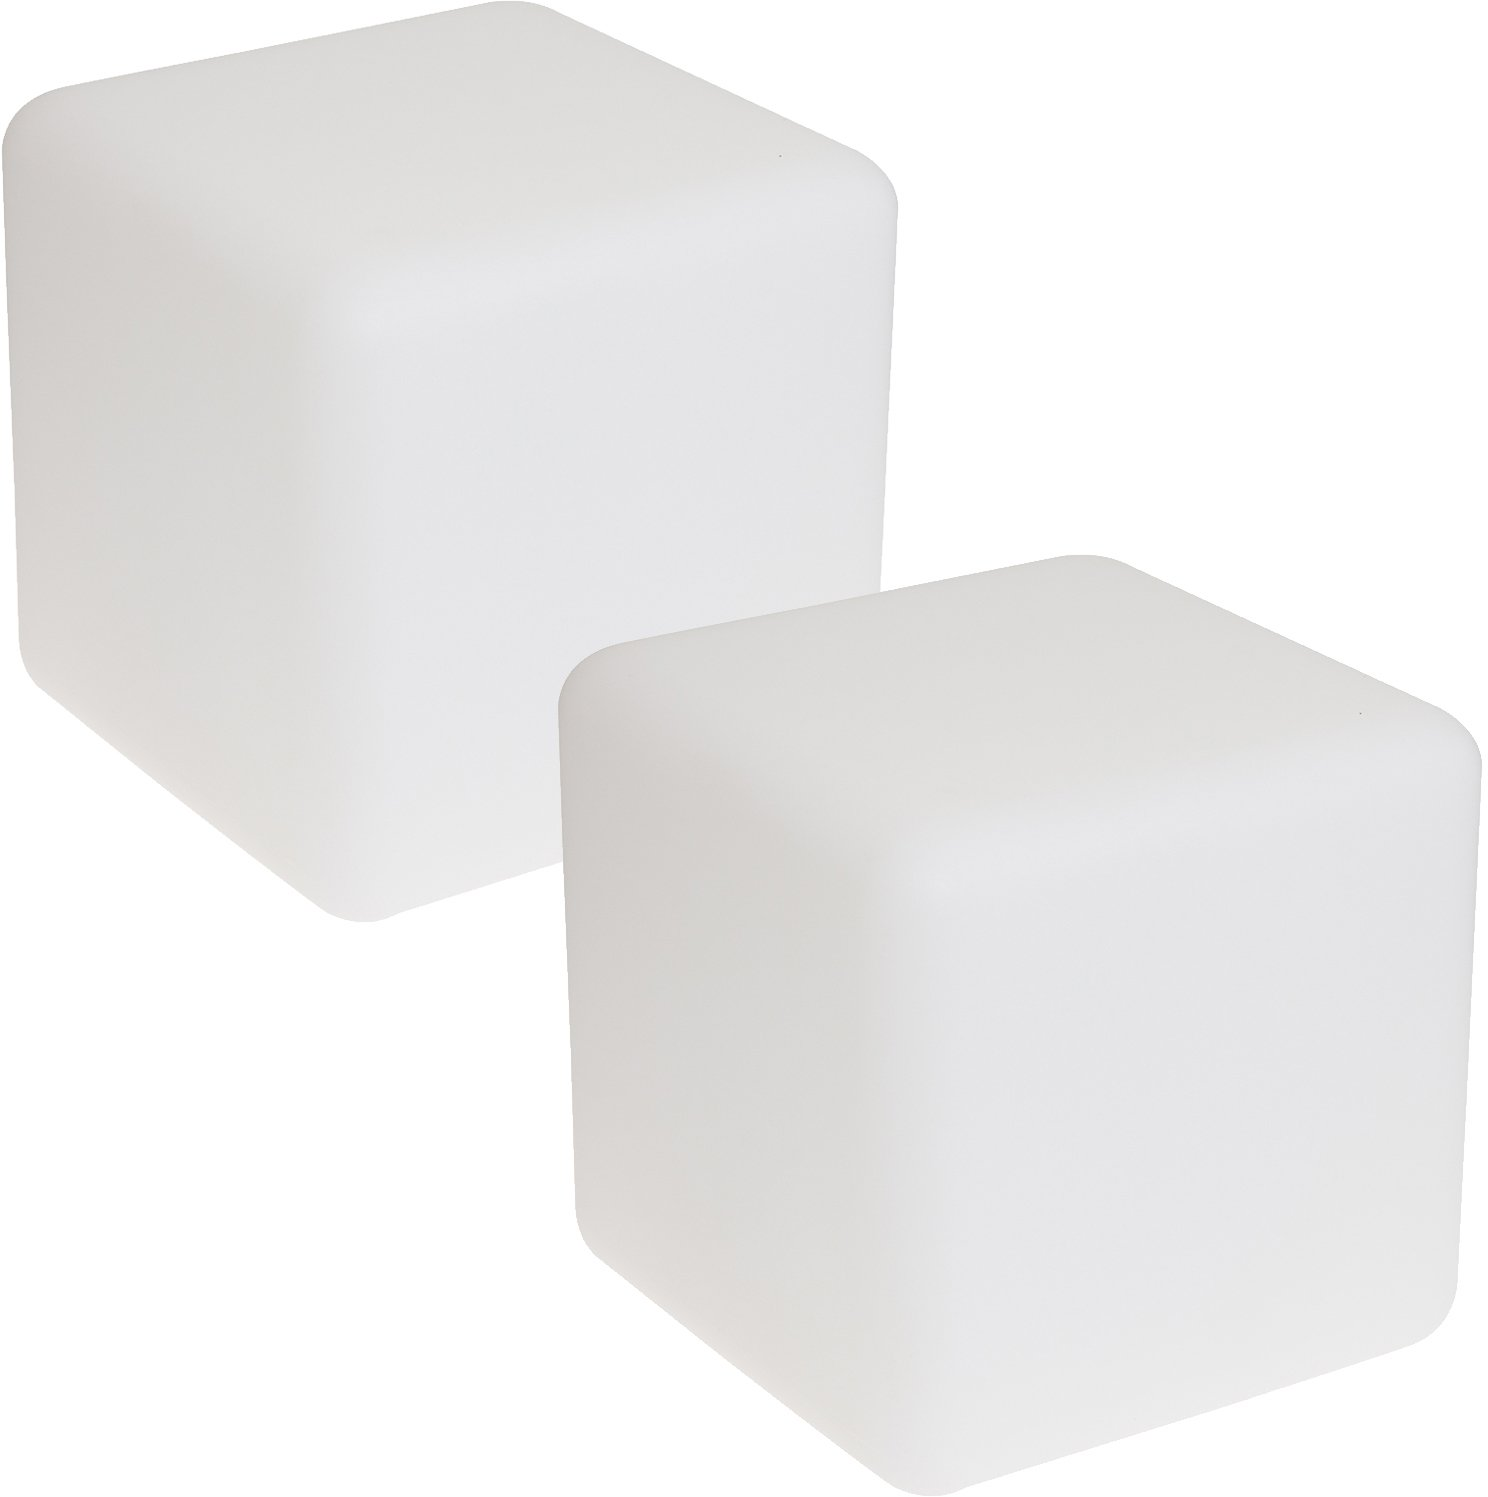 GreenLighting White Color Changing 3W Floating LED Cube Light (300mm, 2 Pack) by GreenLighting